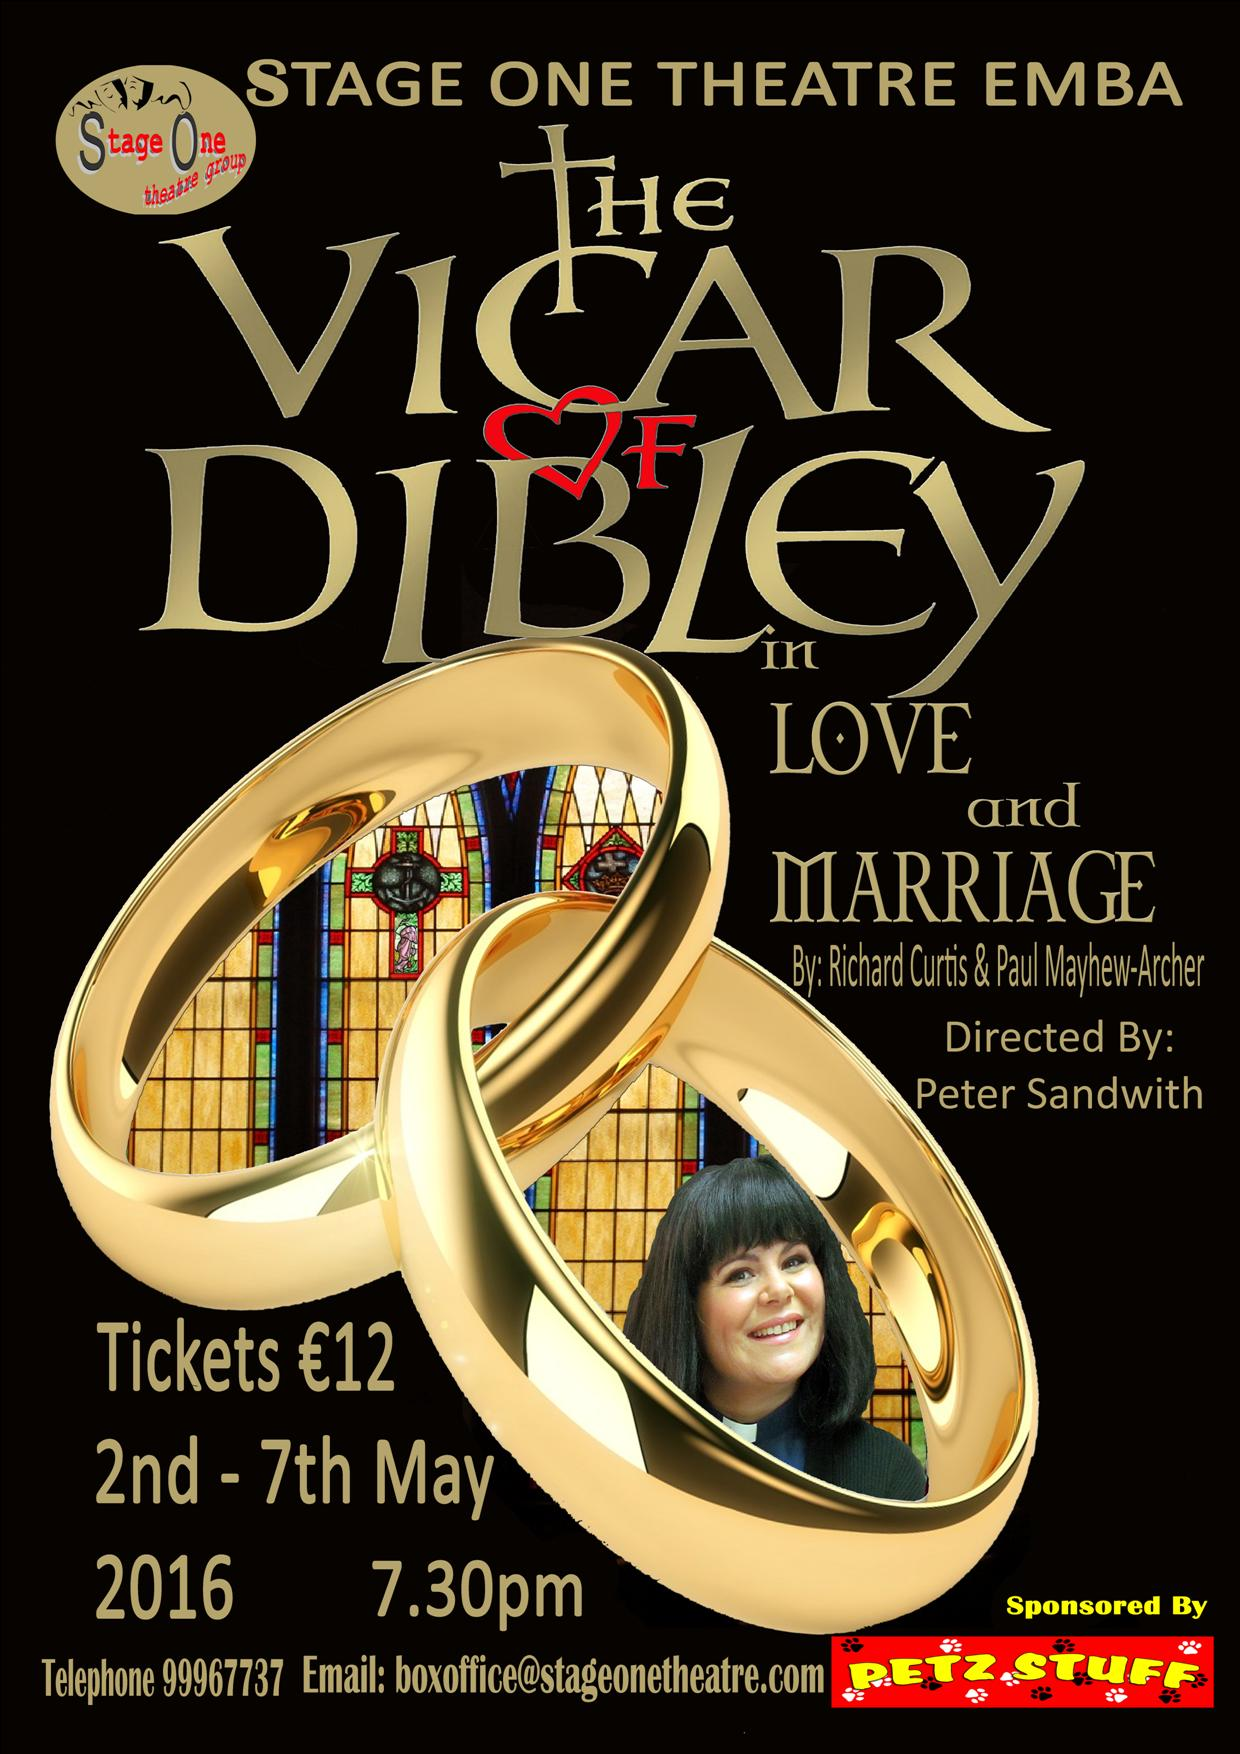 The Vicar of Dibley in Love and Marriage